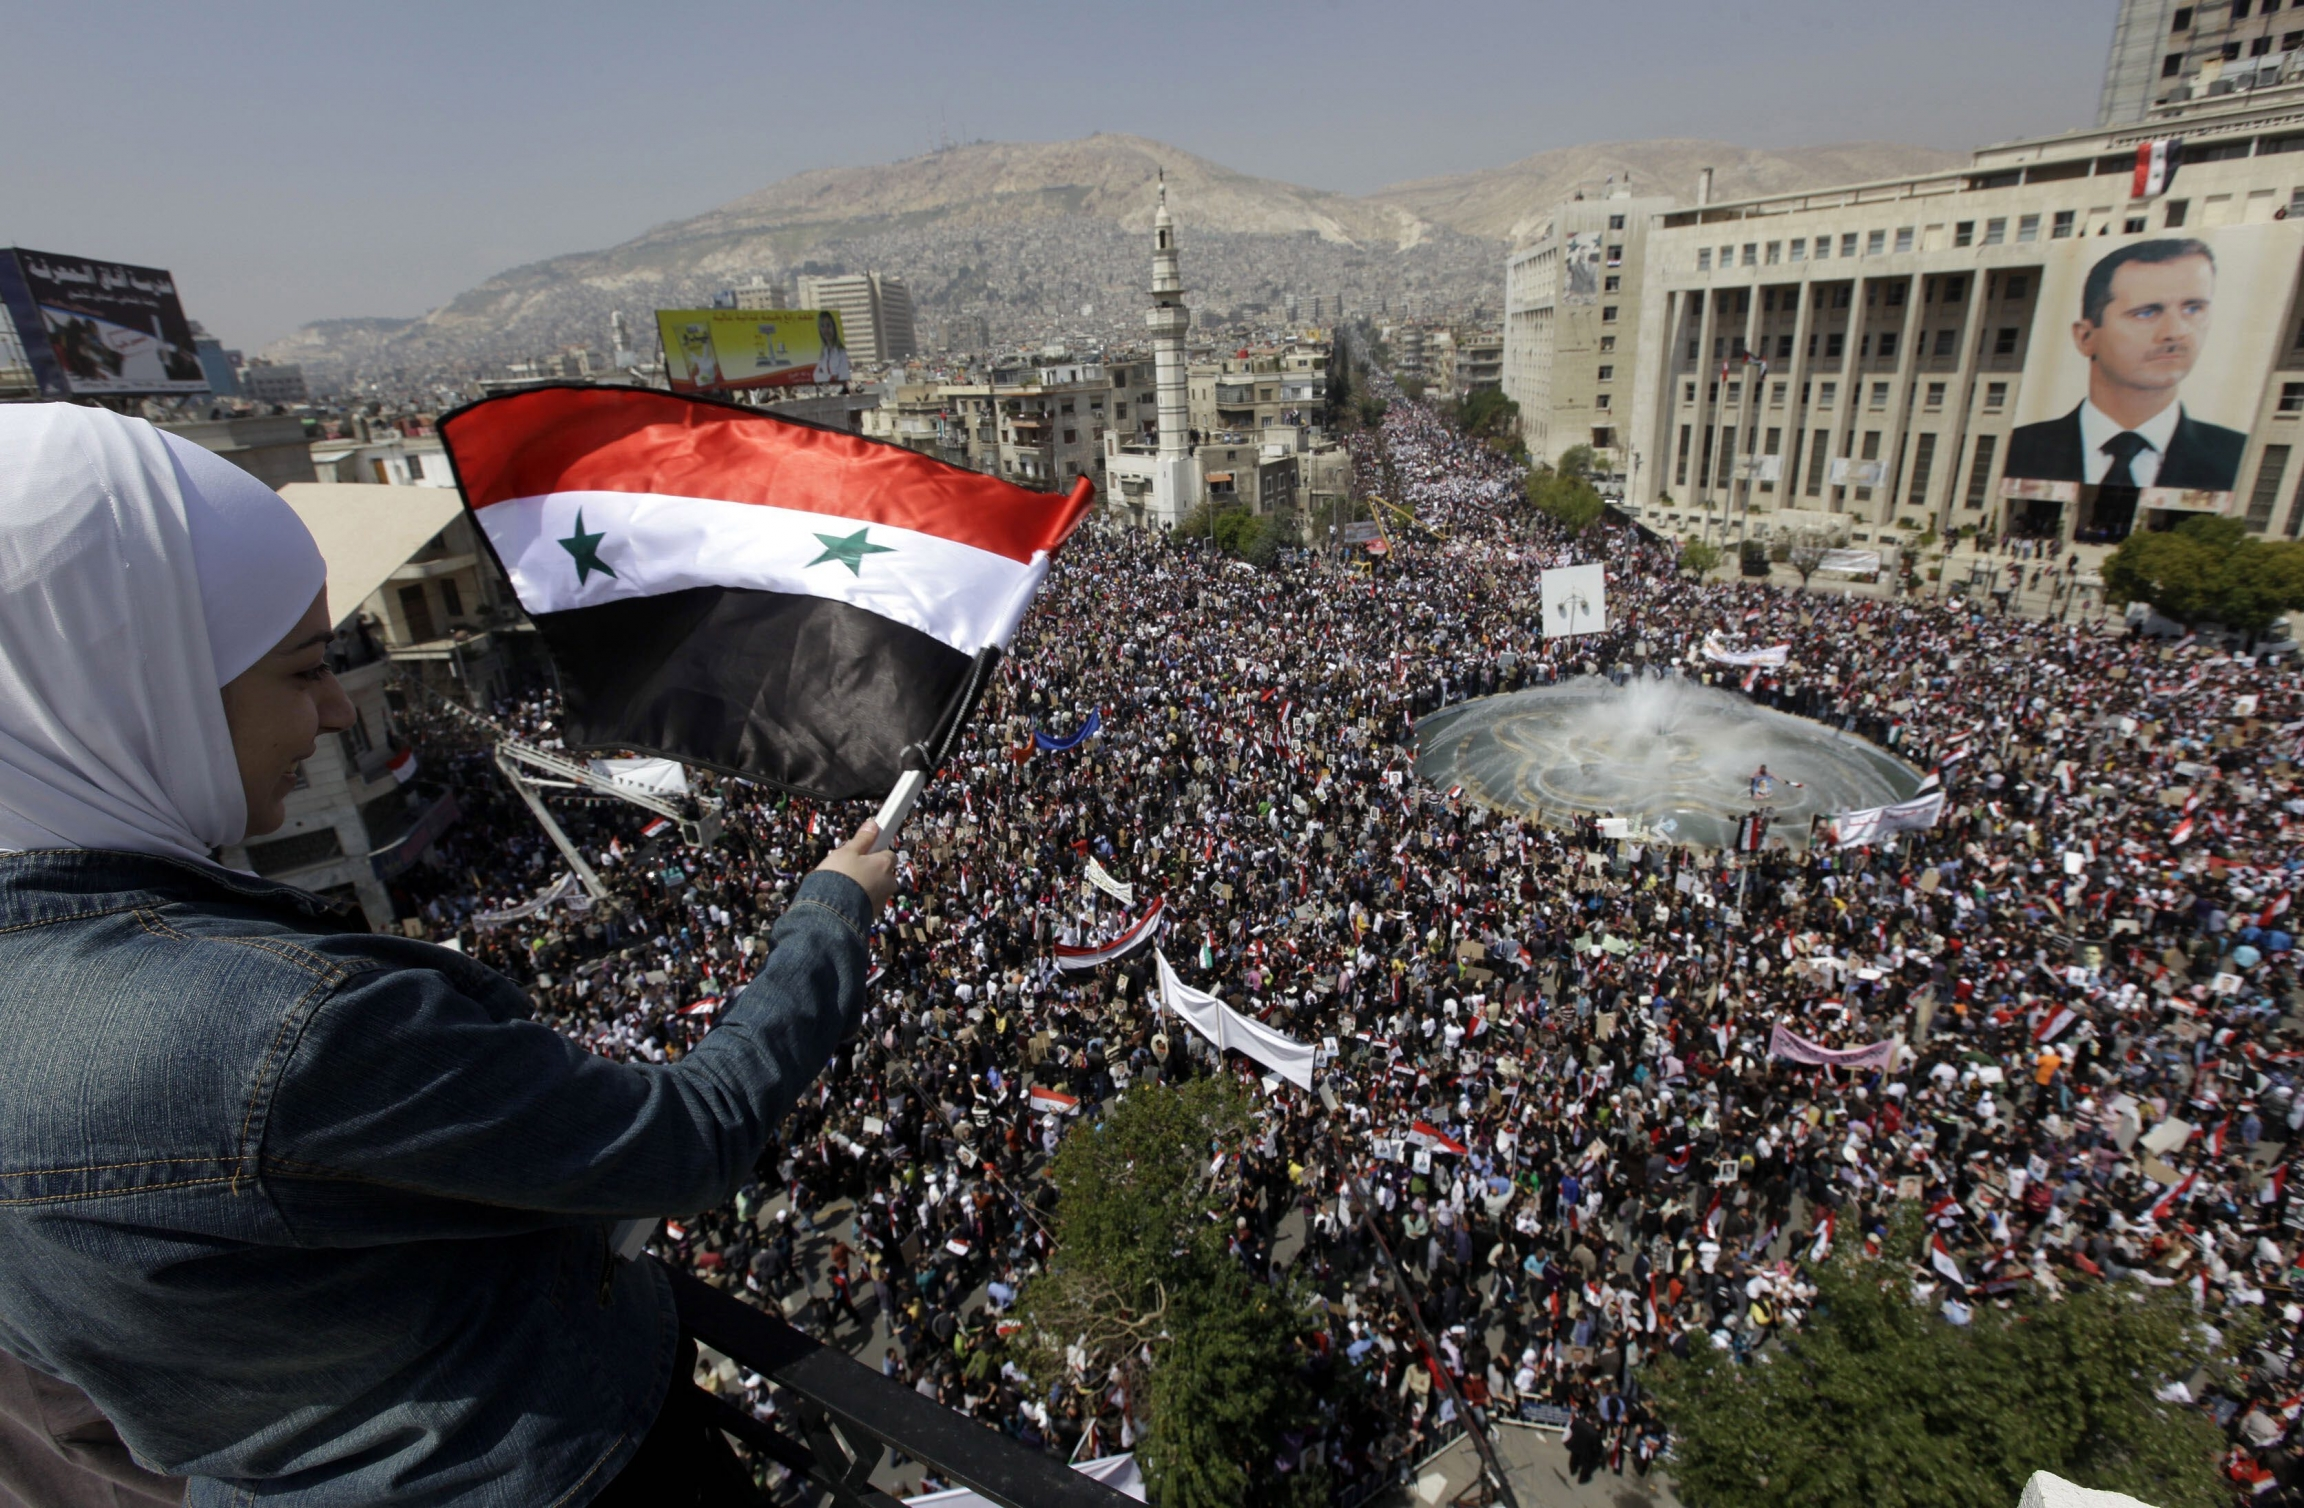 A supporter of Syrian President Bashar Assad waves a Syrian flag as she looks over a crowd gathered to show support for their president in Damascus, Syria, March 29, 2011.